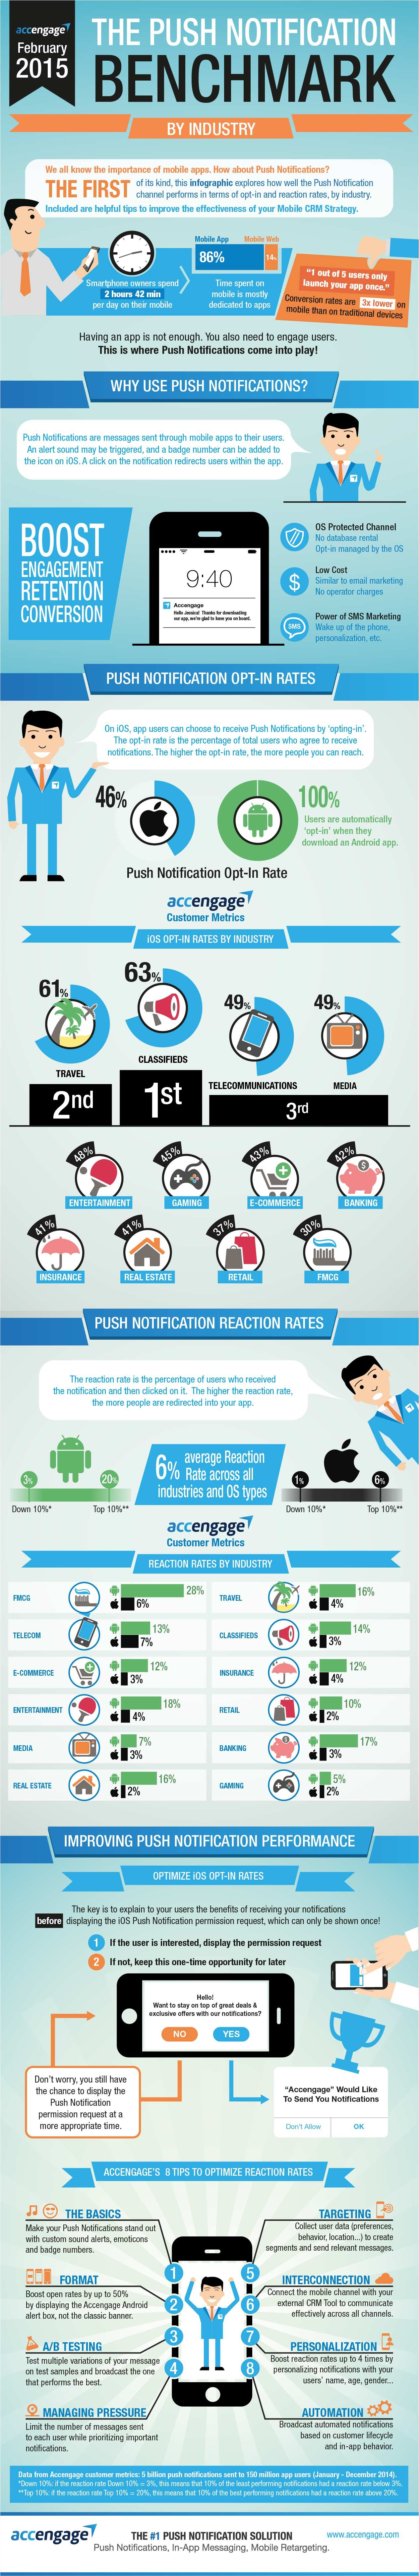 The Push Notification Benchmark #infographic